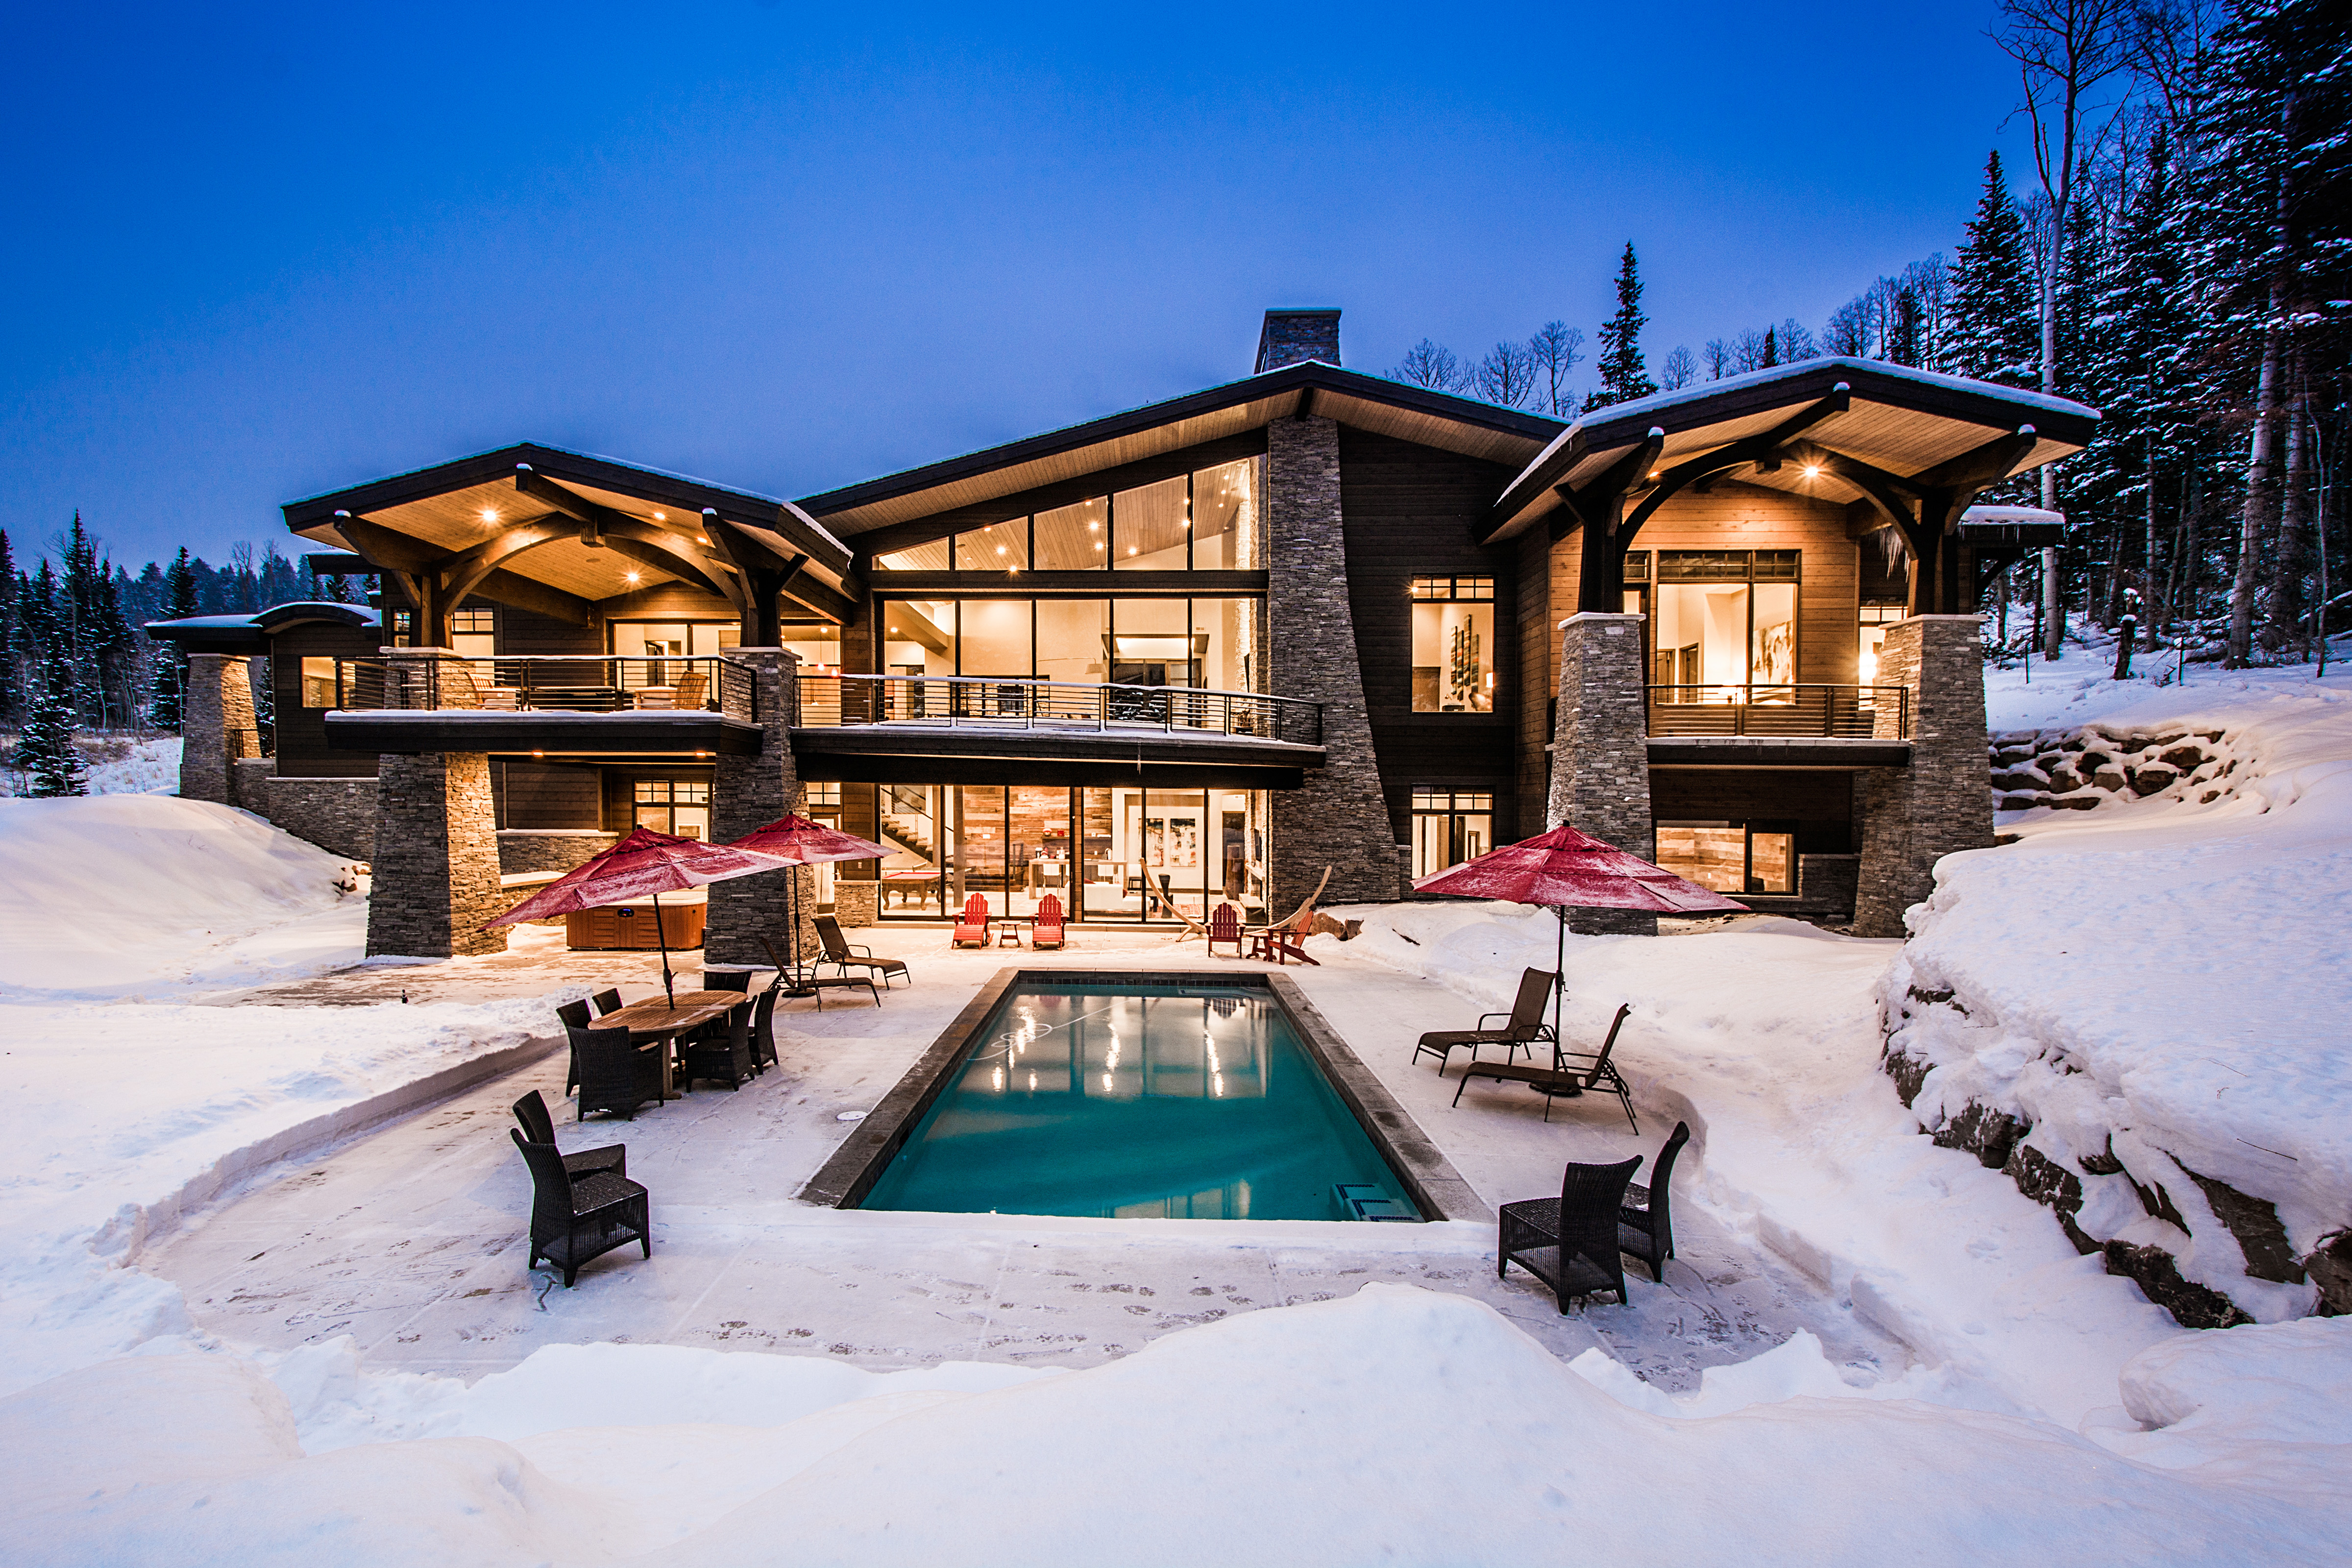 Planning a Luxury Ski Vacation: Hotel or Vacation Rental?